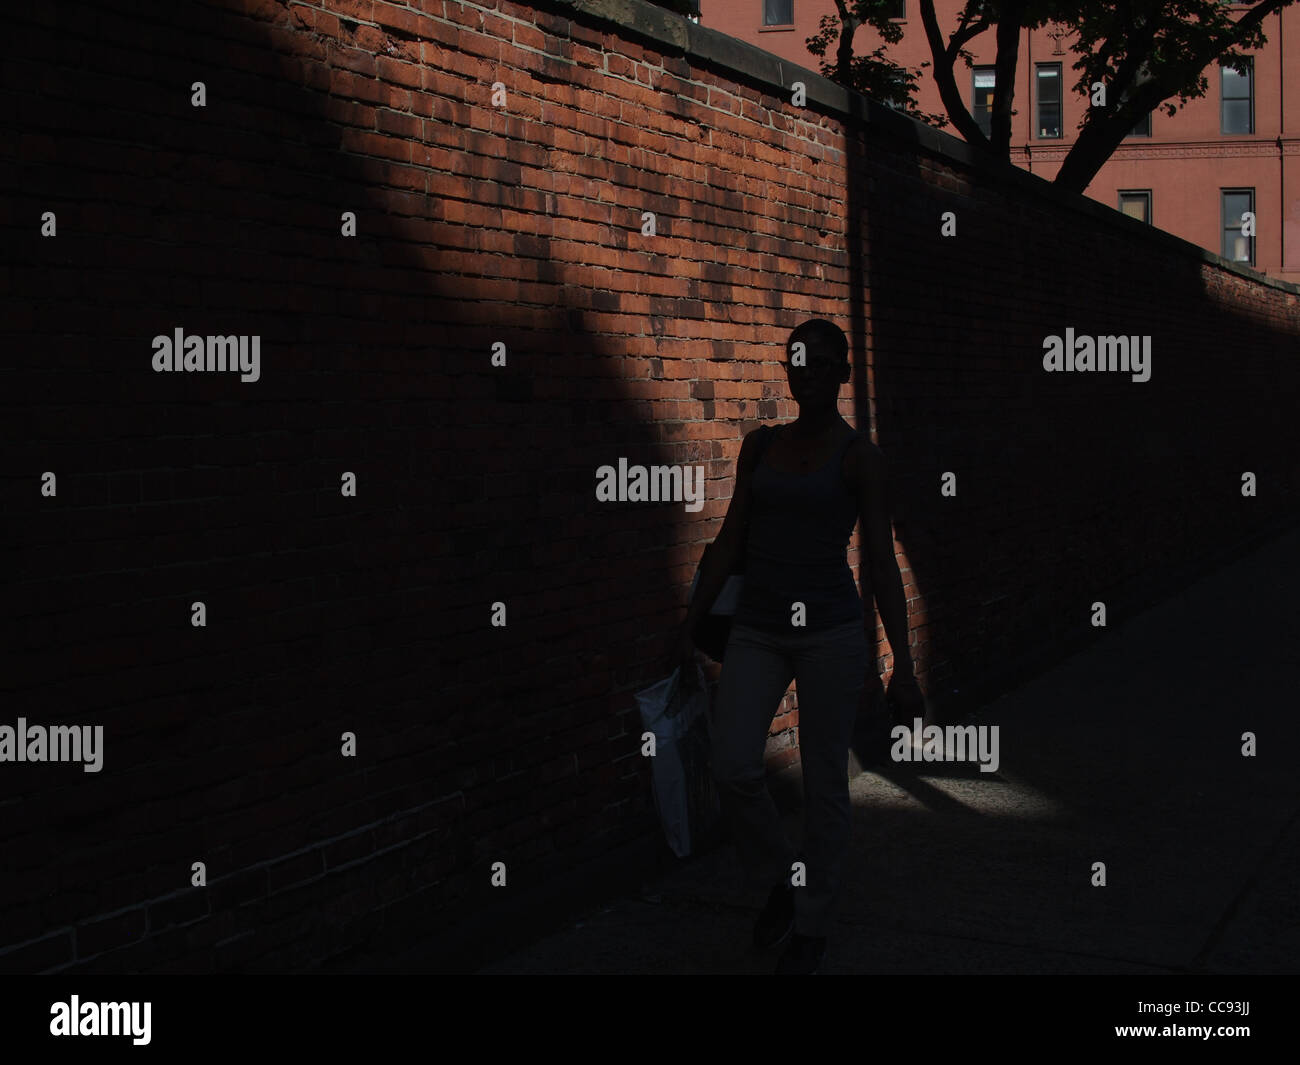 Superior New York City Light And Shadow, Woman Walks Past Catholic Church Wall In  Little Italy Area Nice Look